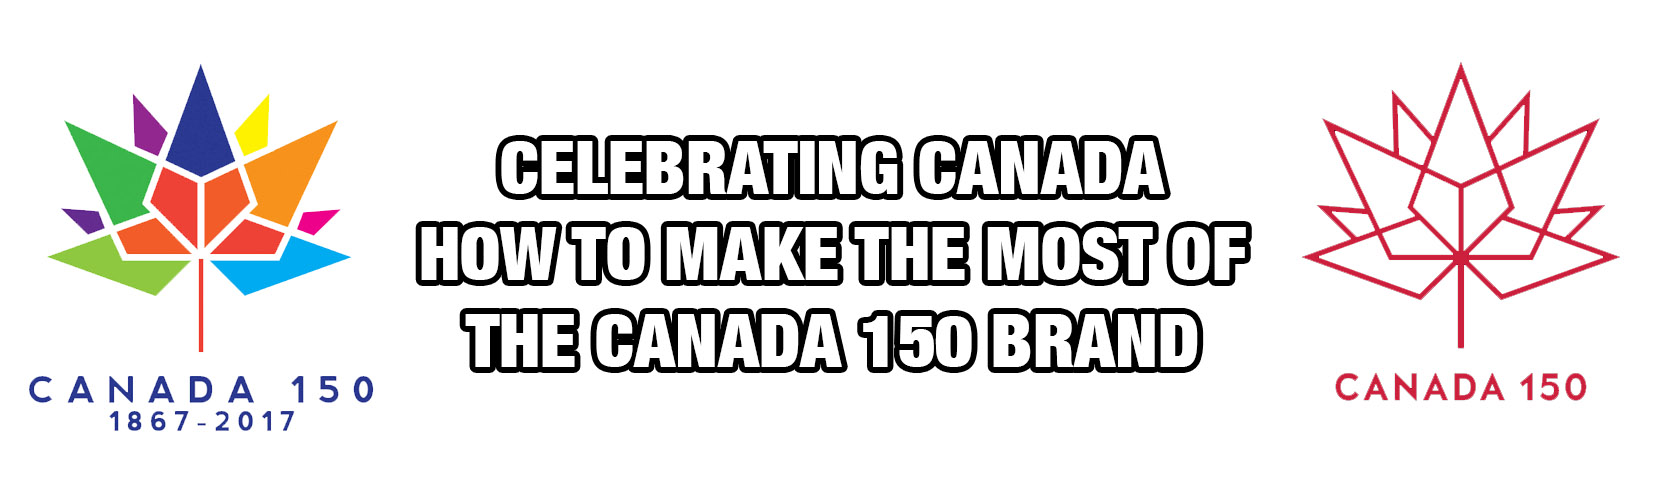 Celebrating Canada! How To Make the Most of the Canada 150 Brand!